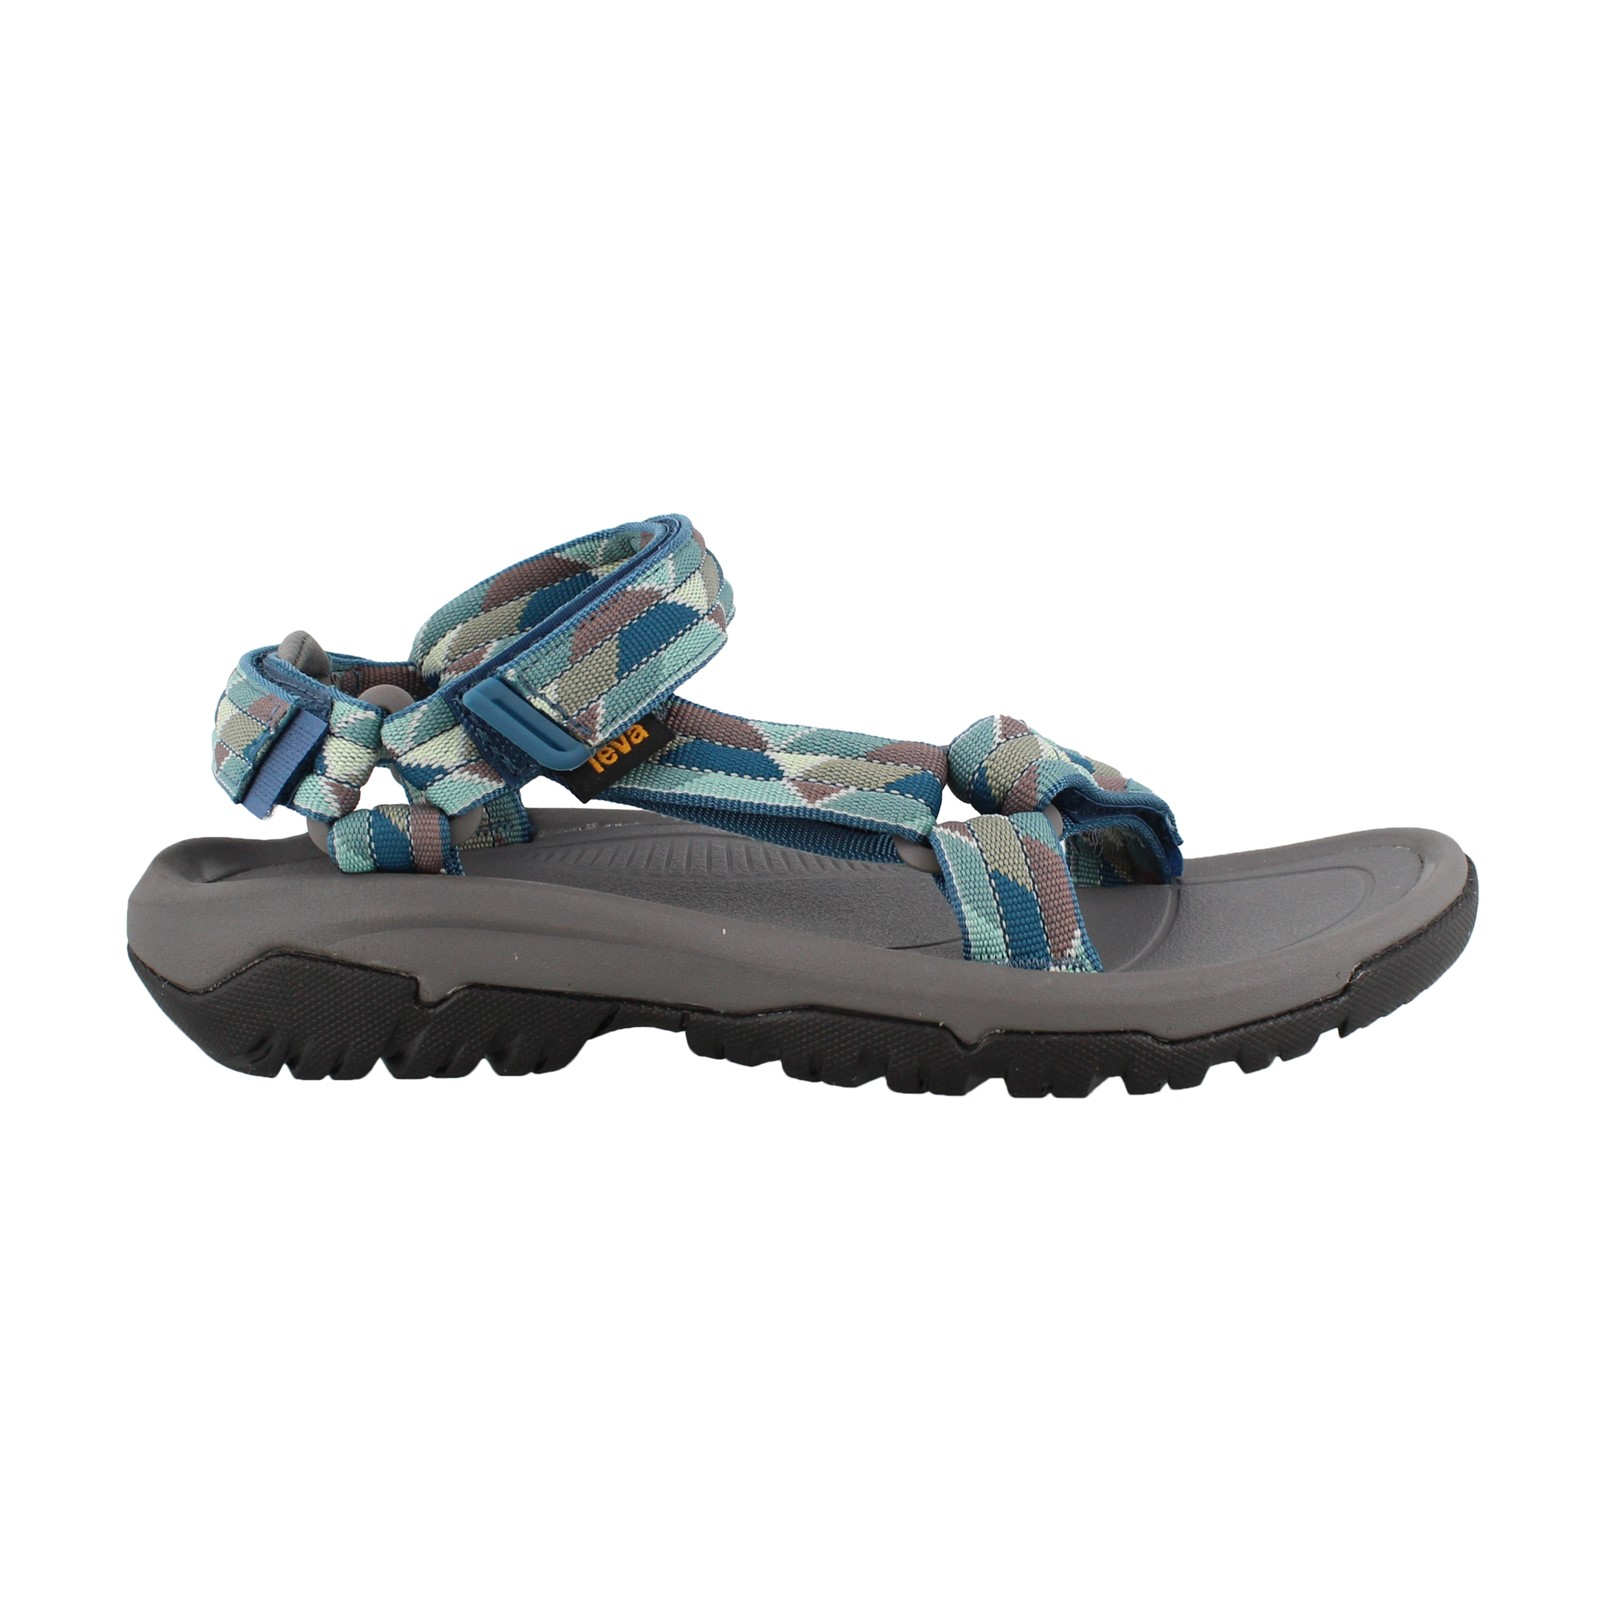 a048e4f5e00f Home  Women s Teva